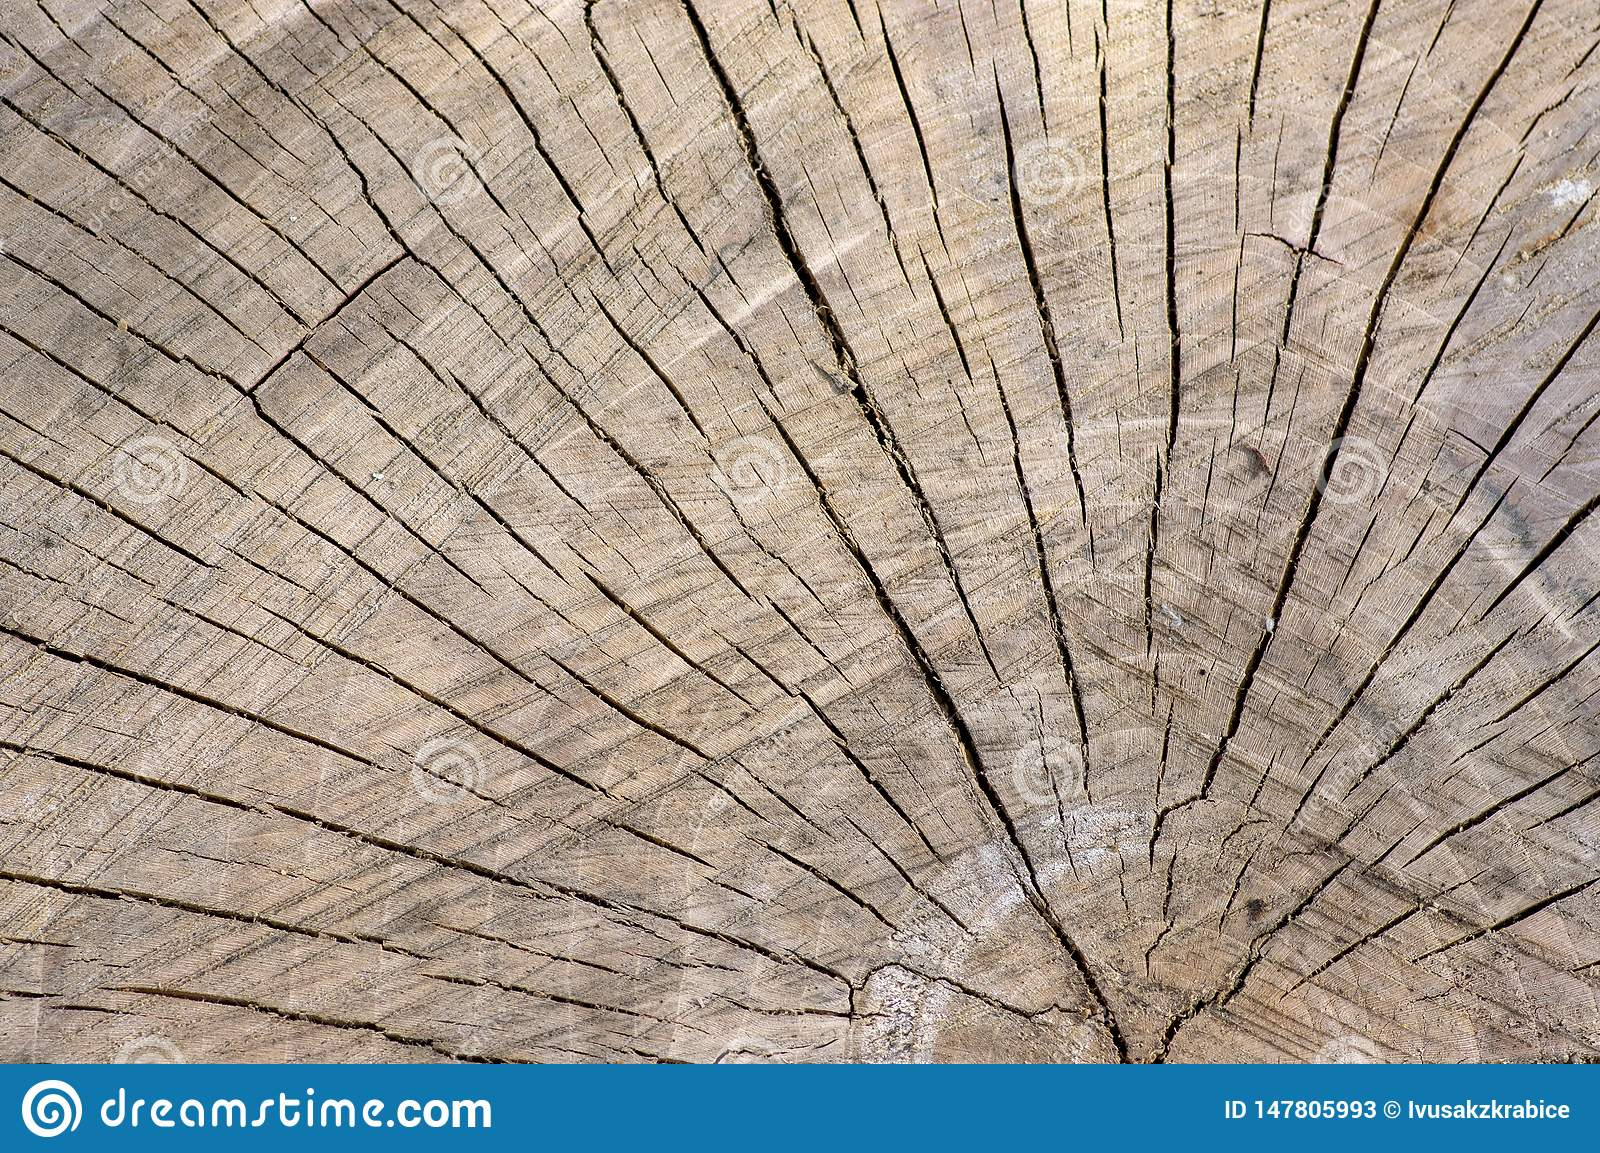 Detail of wooden stump, cut tree log, beautiful wood structure, textured ages